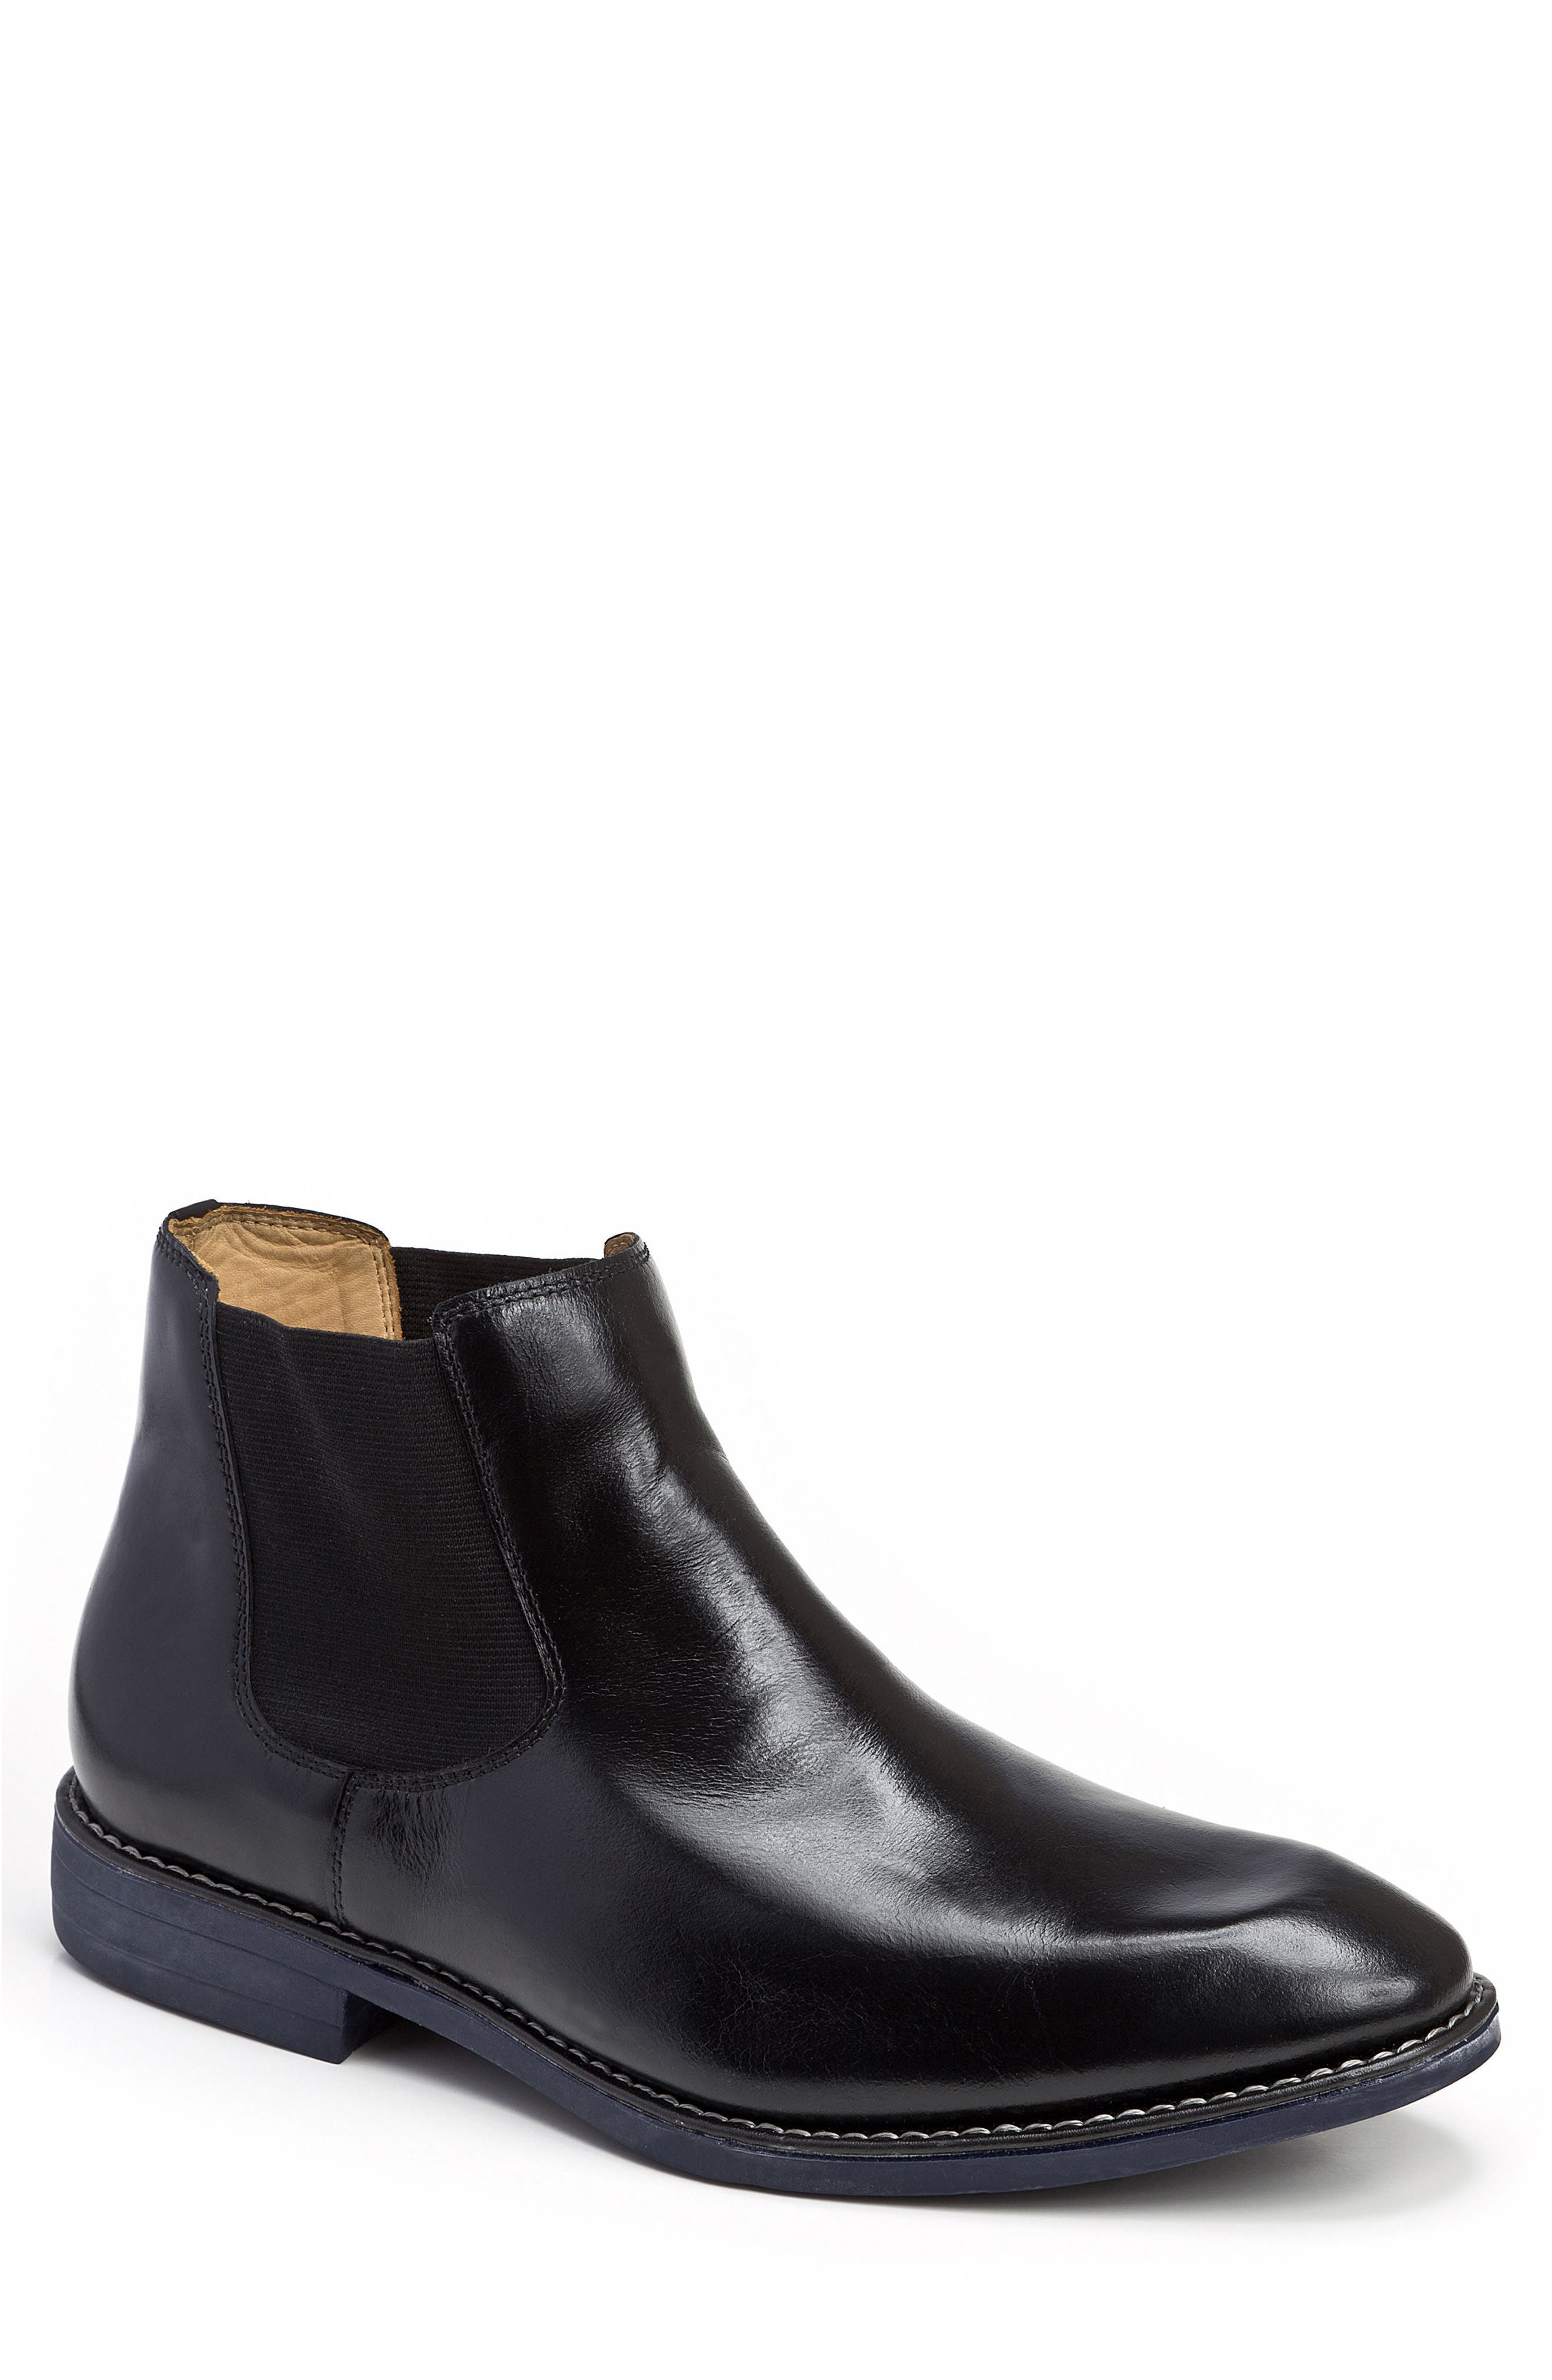 Marcus Chelsea Boot,                         Main,                         color, BLACK LEATHER